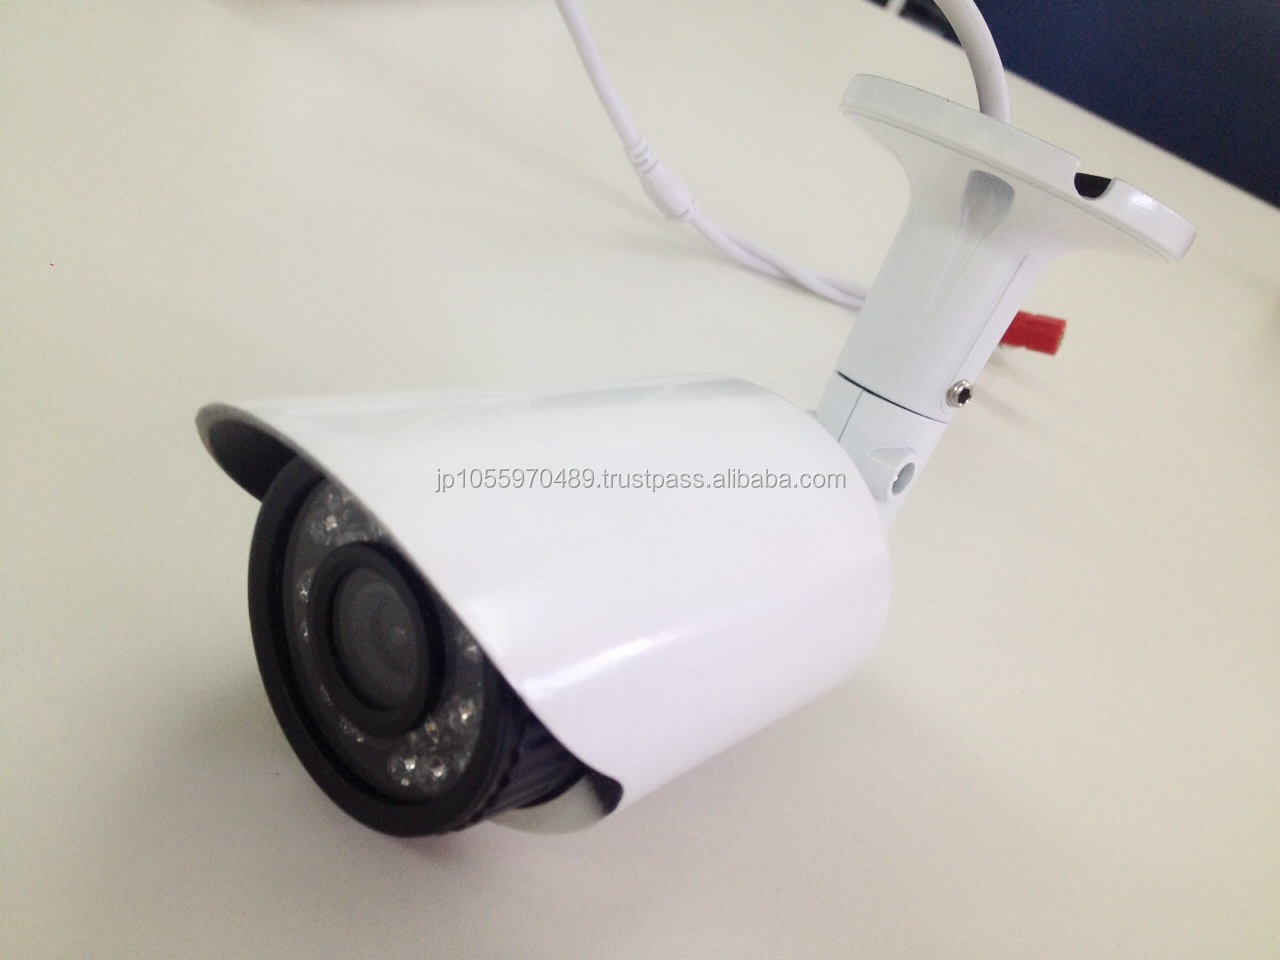 CCTV all in one package with high quality LED TV included